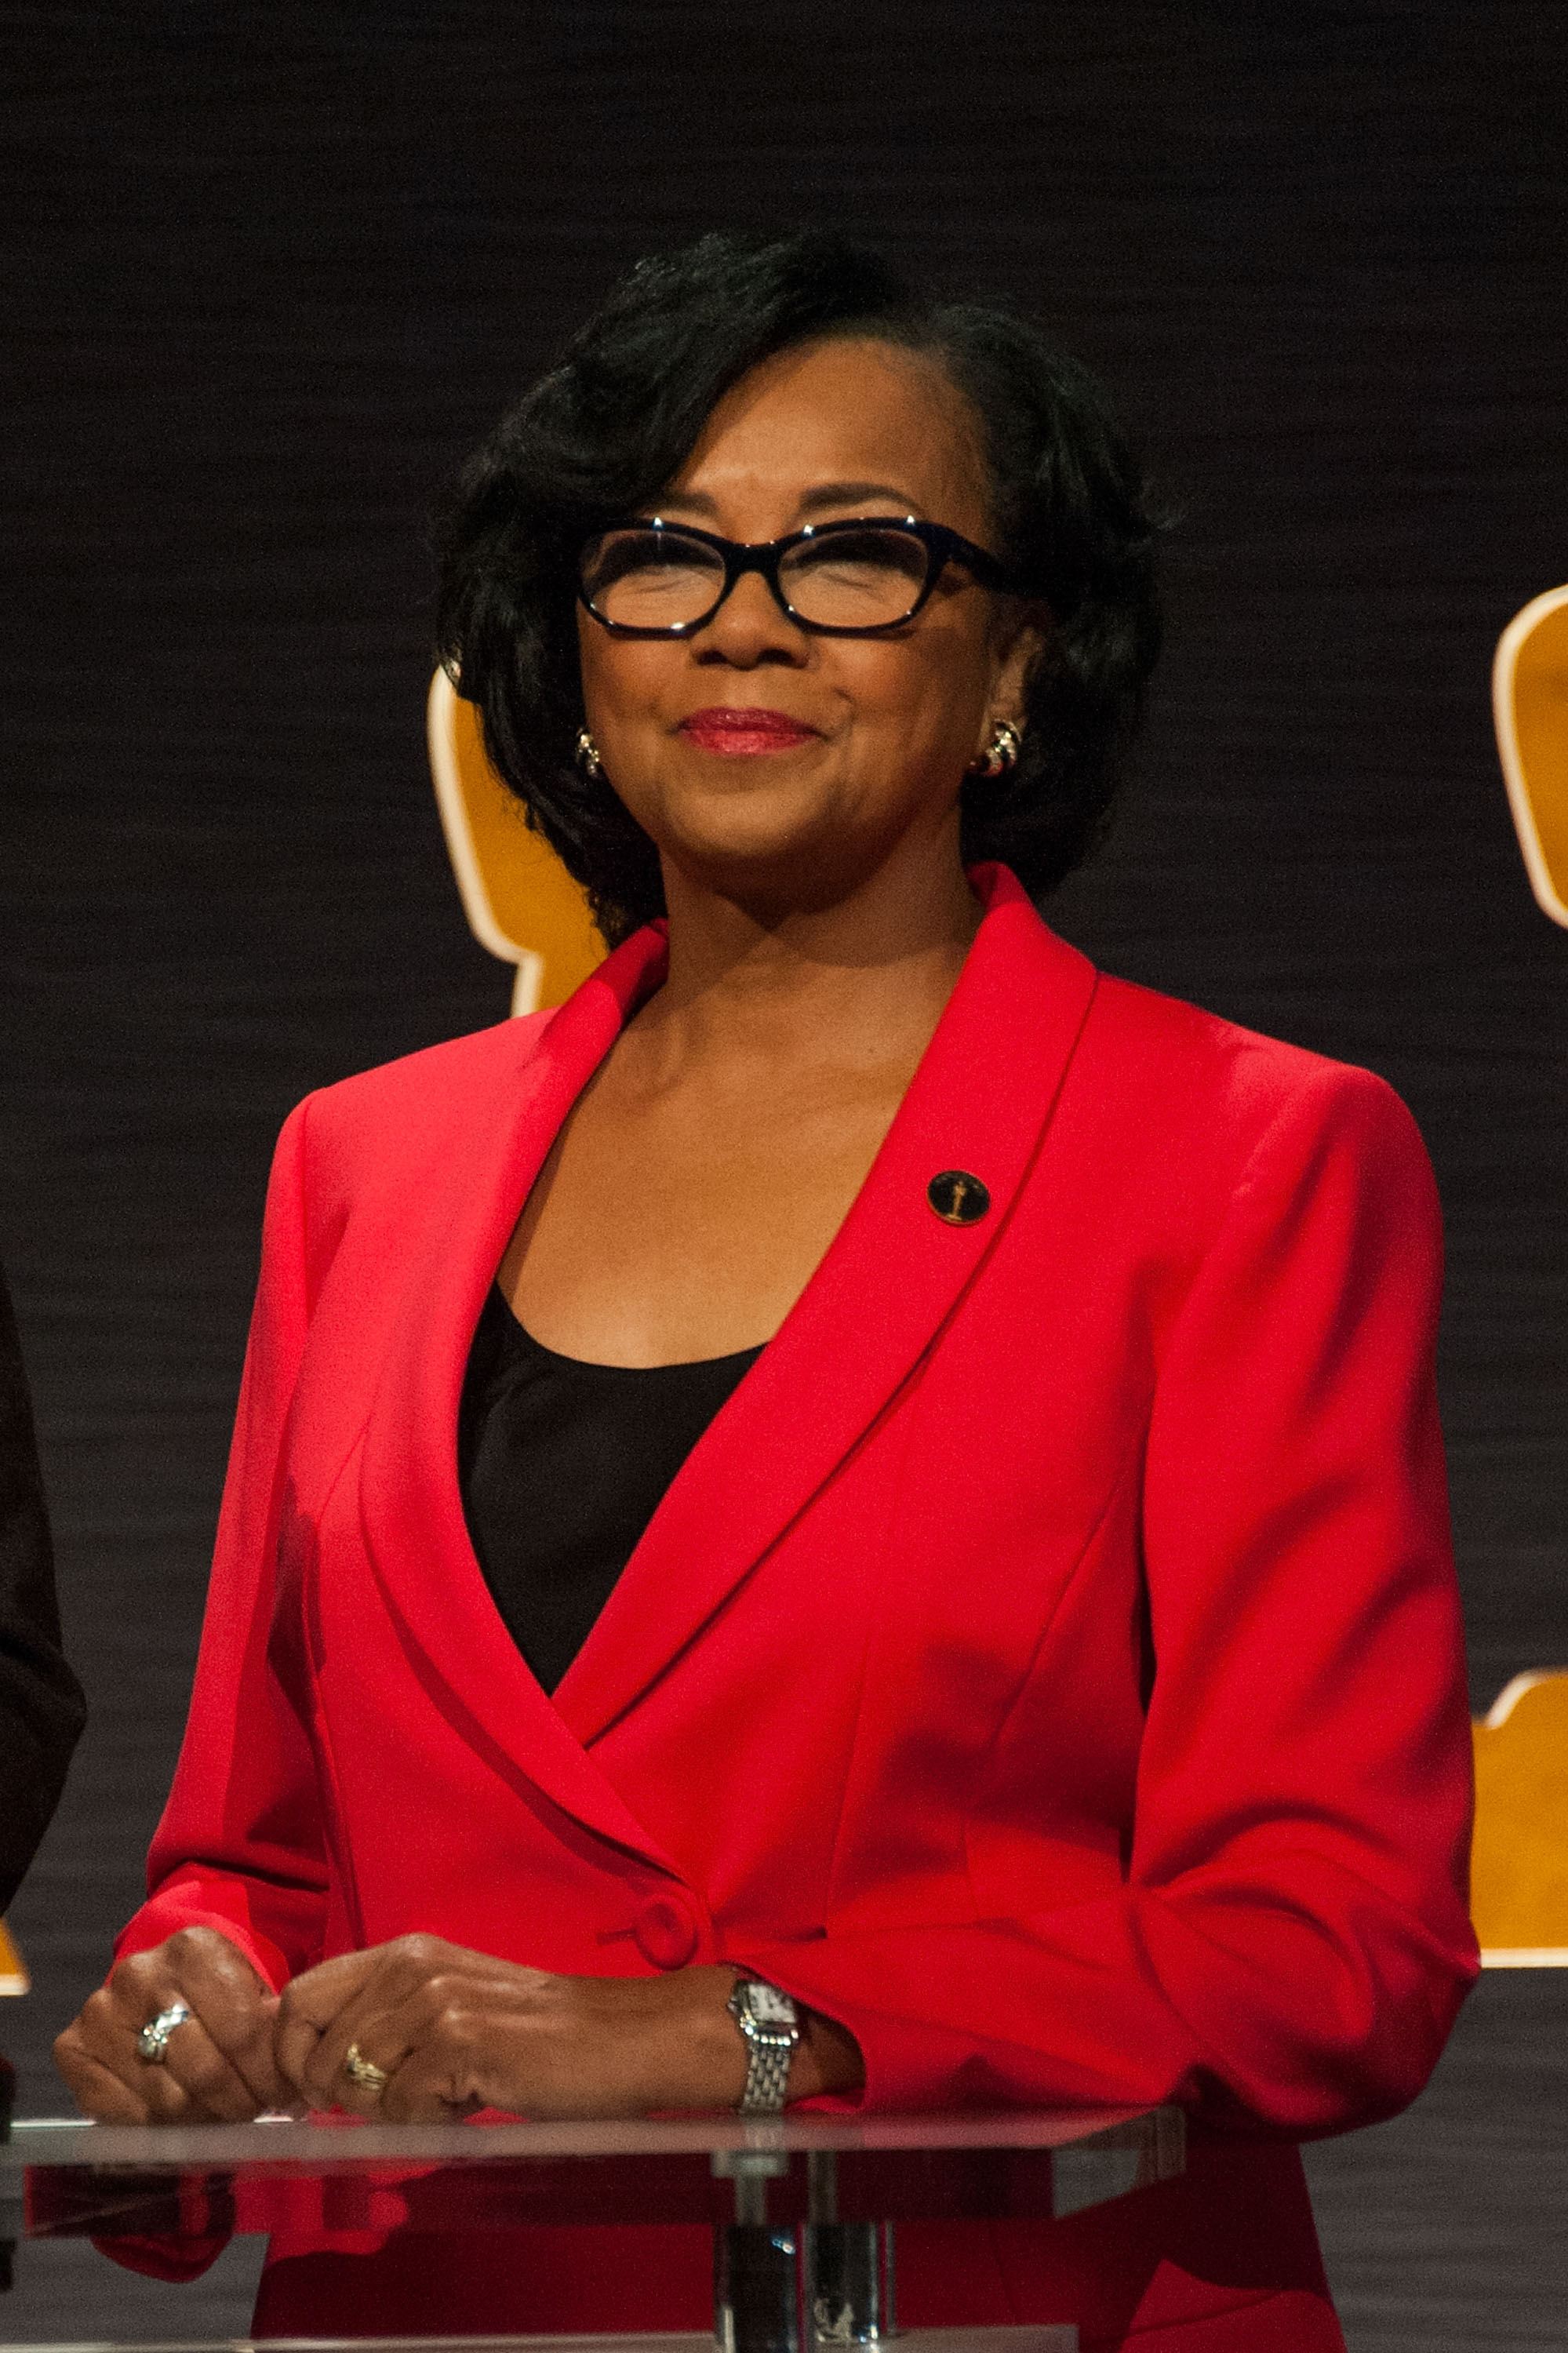 Academy President Cheryl Boone Isaacs attends the 87th Academy Awards Nominations Announcement at AMPAS Samuel Goldwyn Theater on Jan. 15, 2015 in Beverly Hills, California.